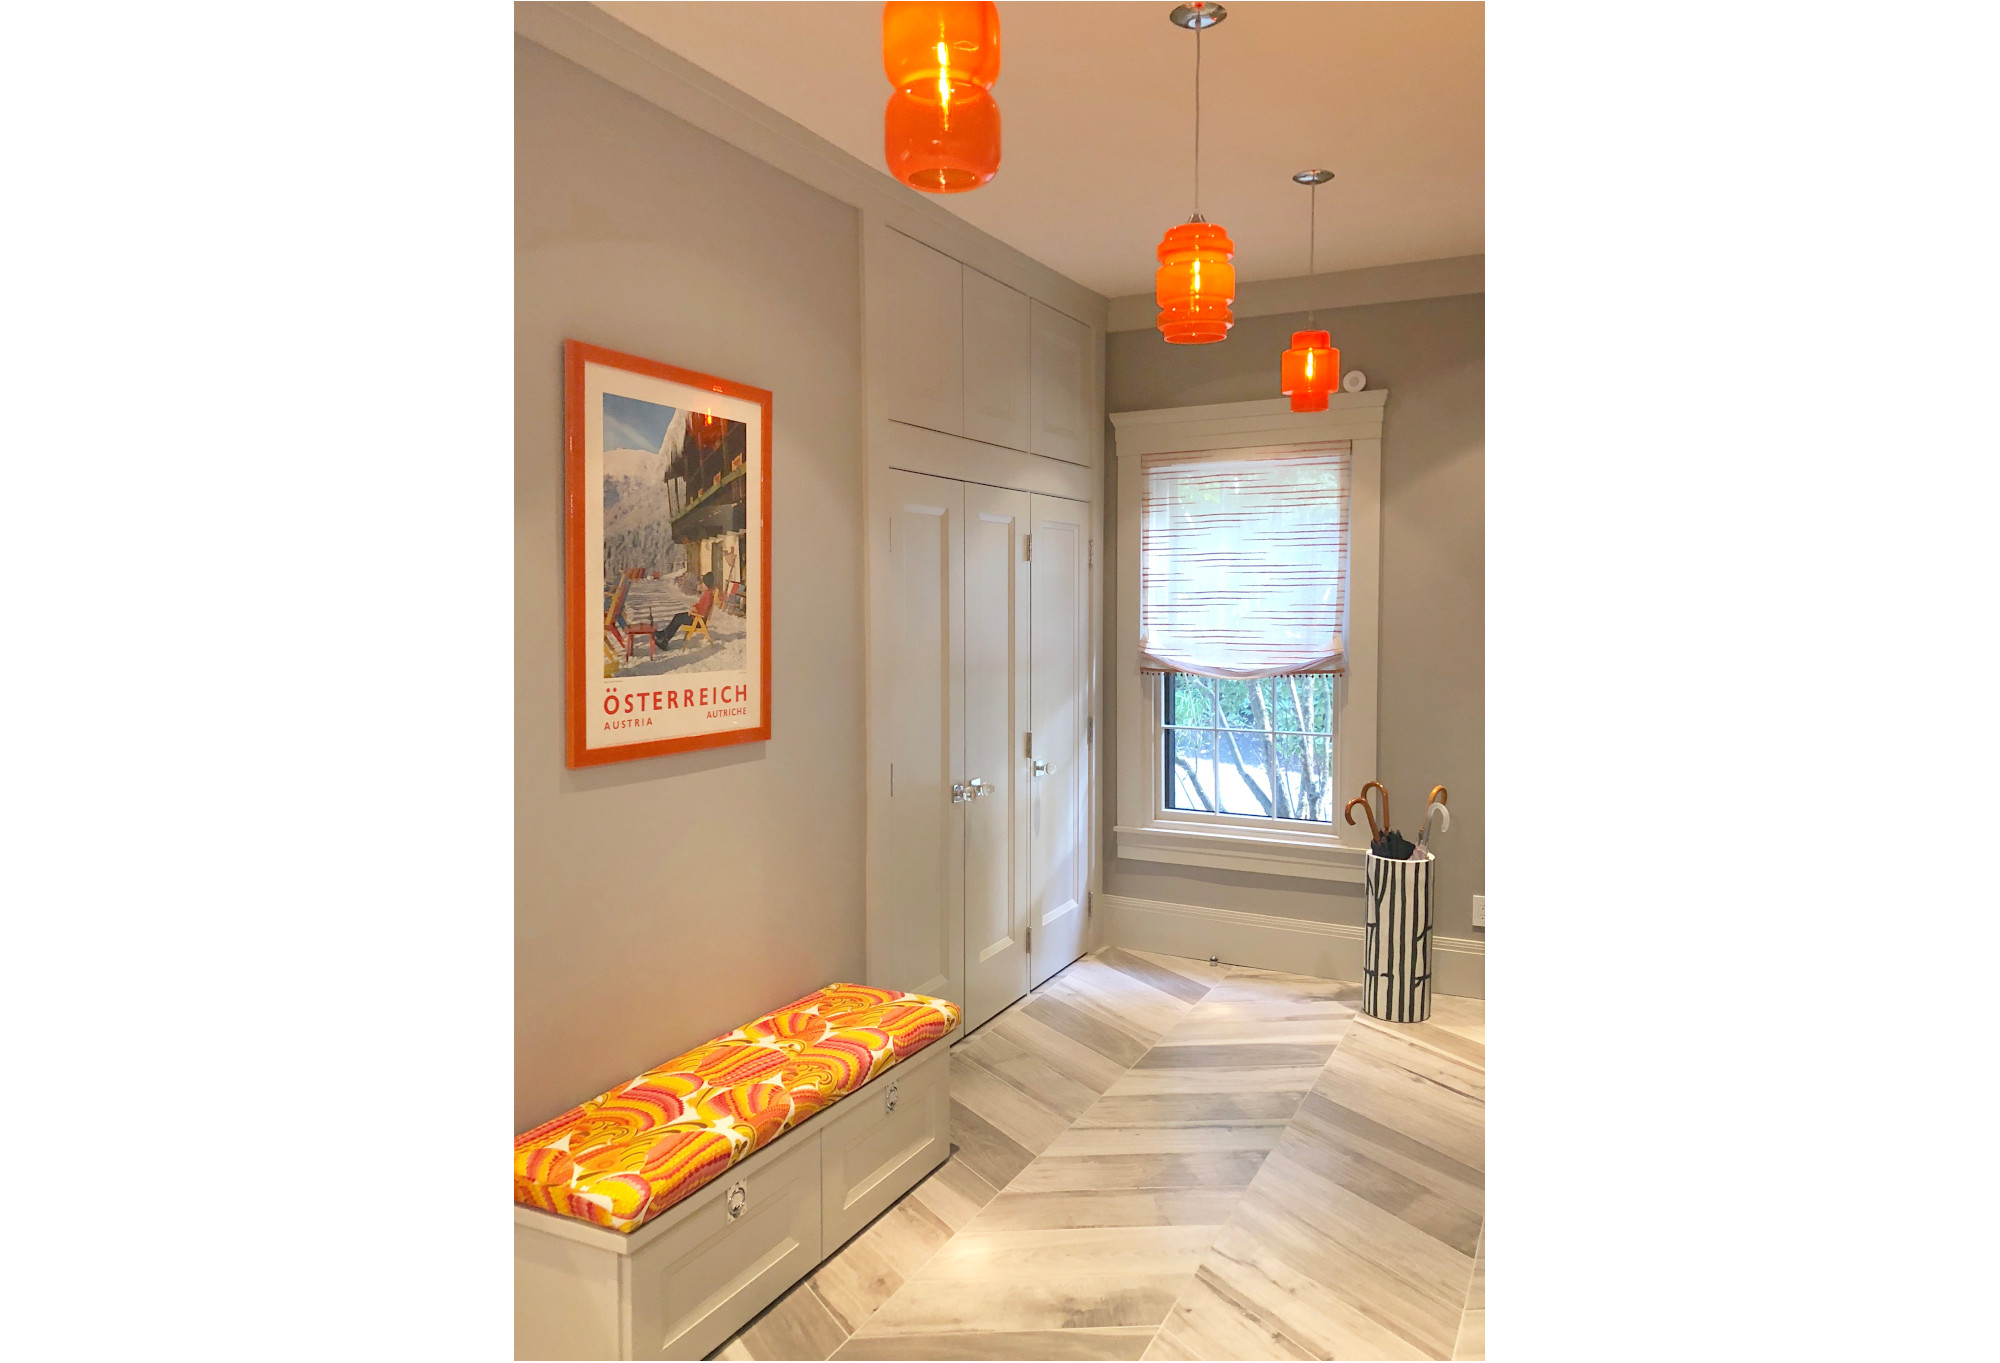 bright hallway with orange lights, bench, and framed ski poster on wall; orange, white, black